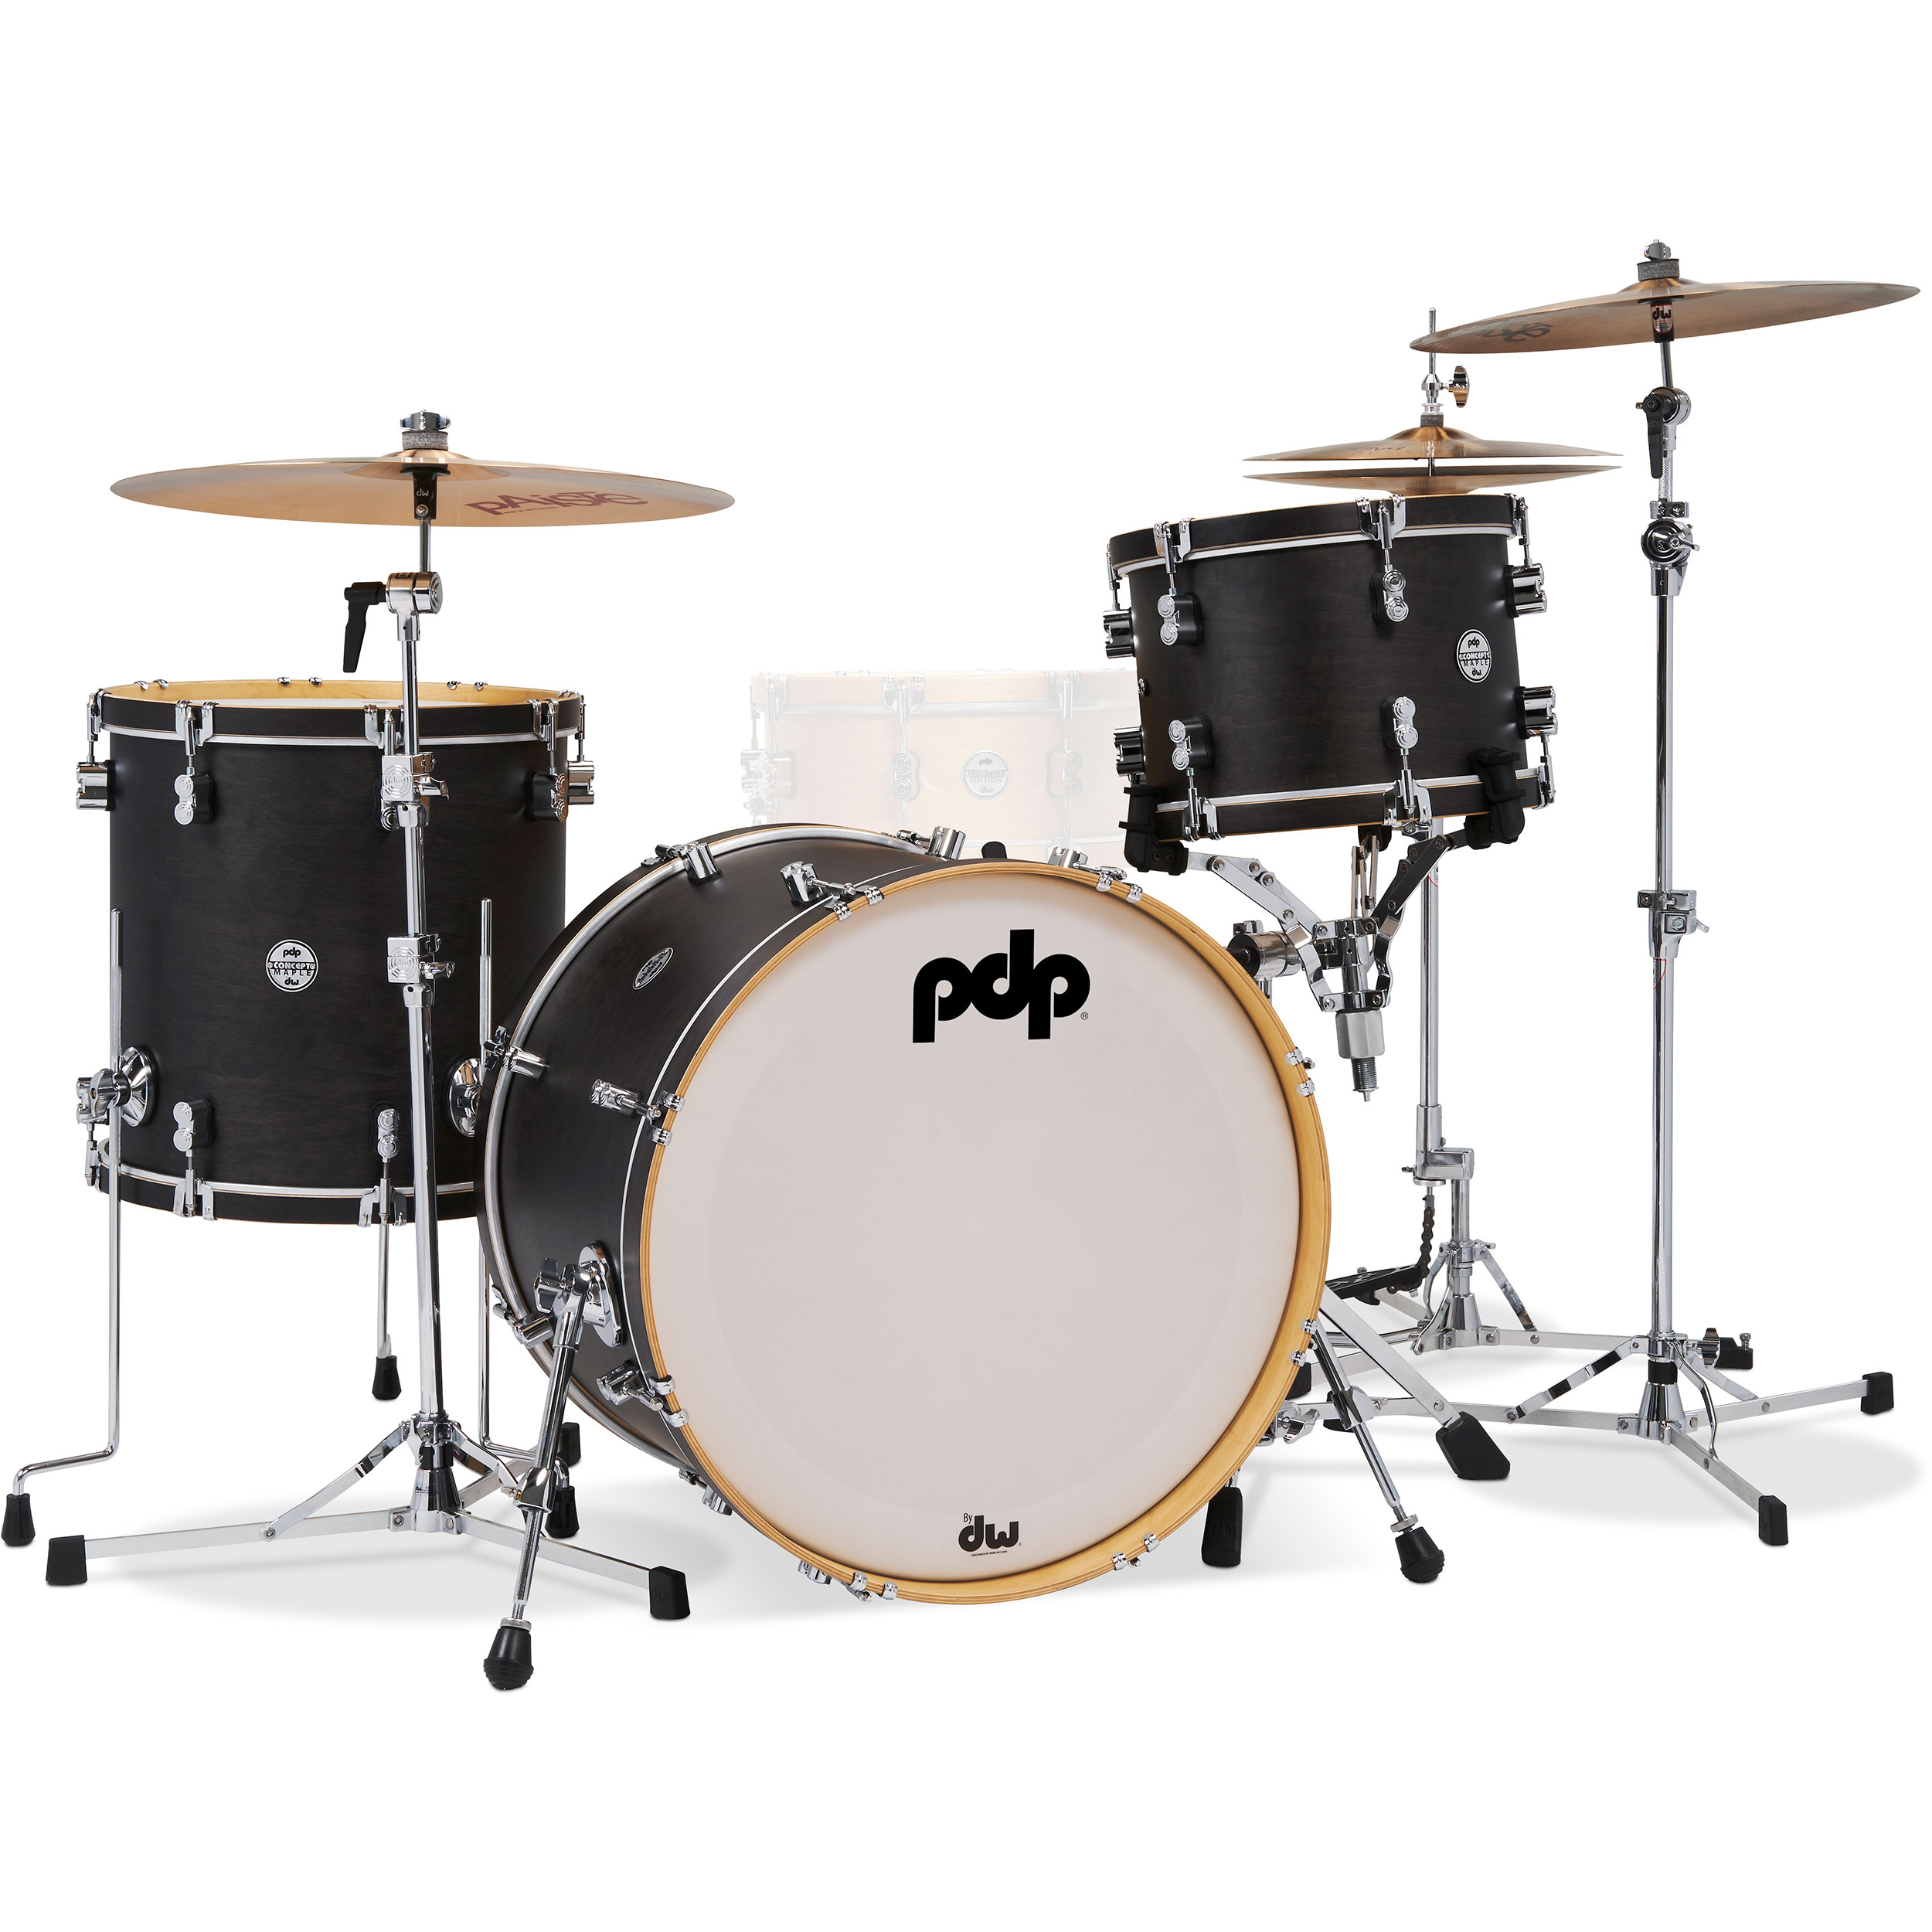 "PDP Concept Maple Classic 3-Piece Drum Set Shell Pack (22"" Bass, 13/16"" Toms)"